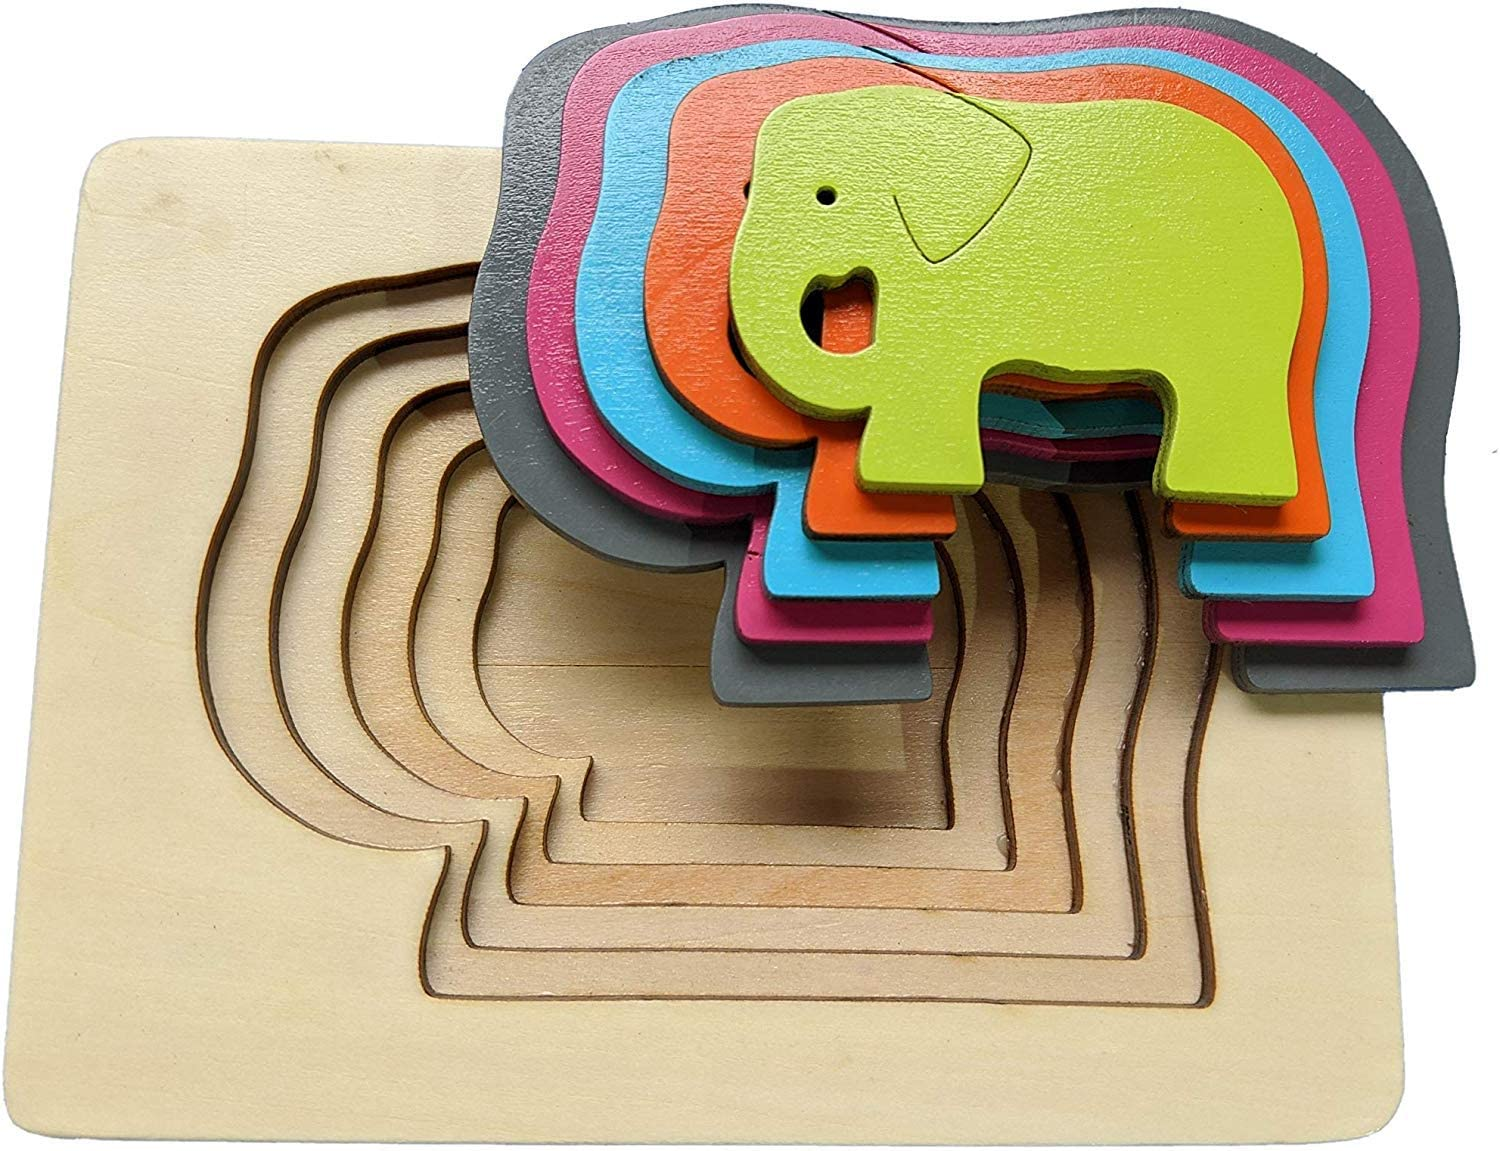 Bunny Toddler Puzzles and Toddler Toys Wooden Stacking Jigsaw Puzzles for Toddlers 3 years Montessori Toys for Toddlers Children and Kids Toys 6 Pieces Includes 5 Layers and Wooden Box